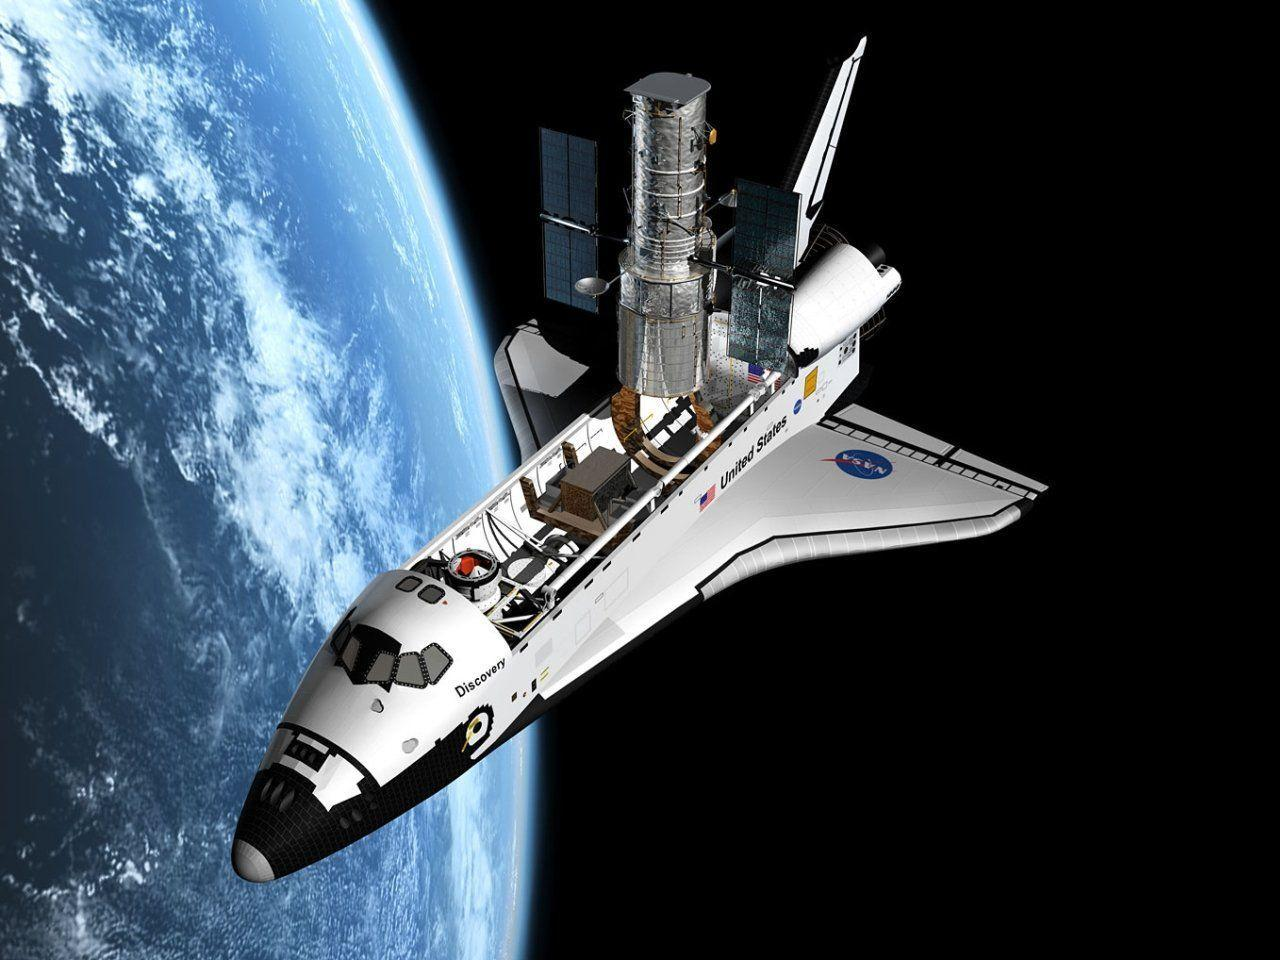 space shuttle space background - photo #28